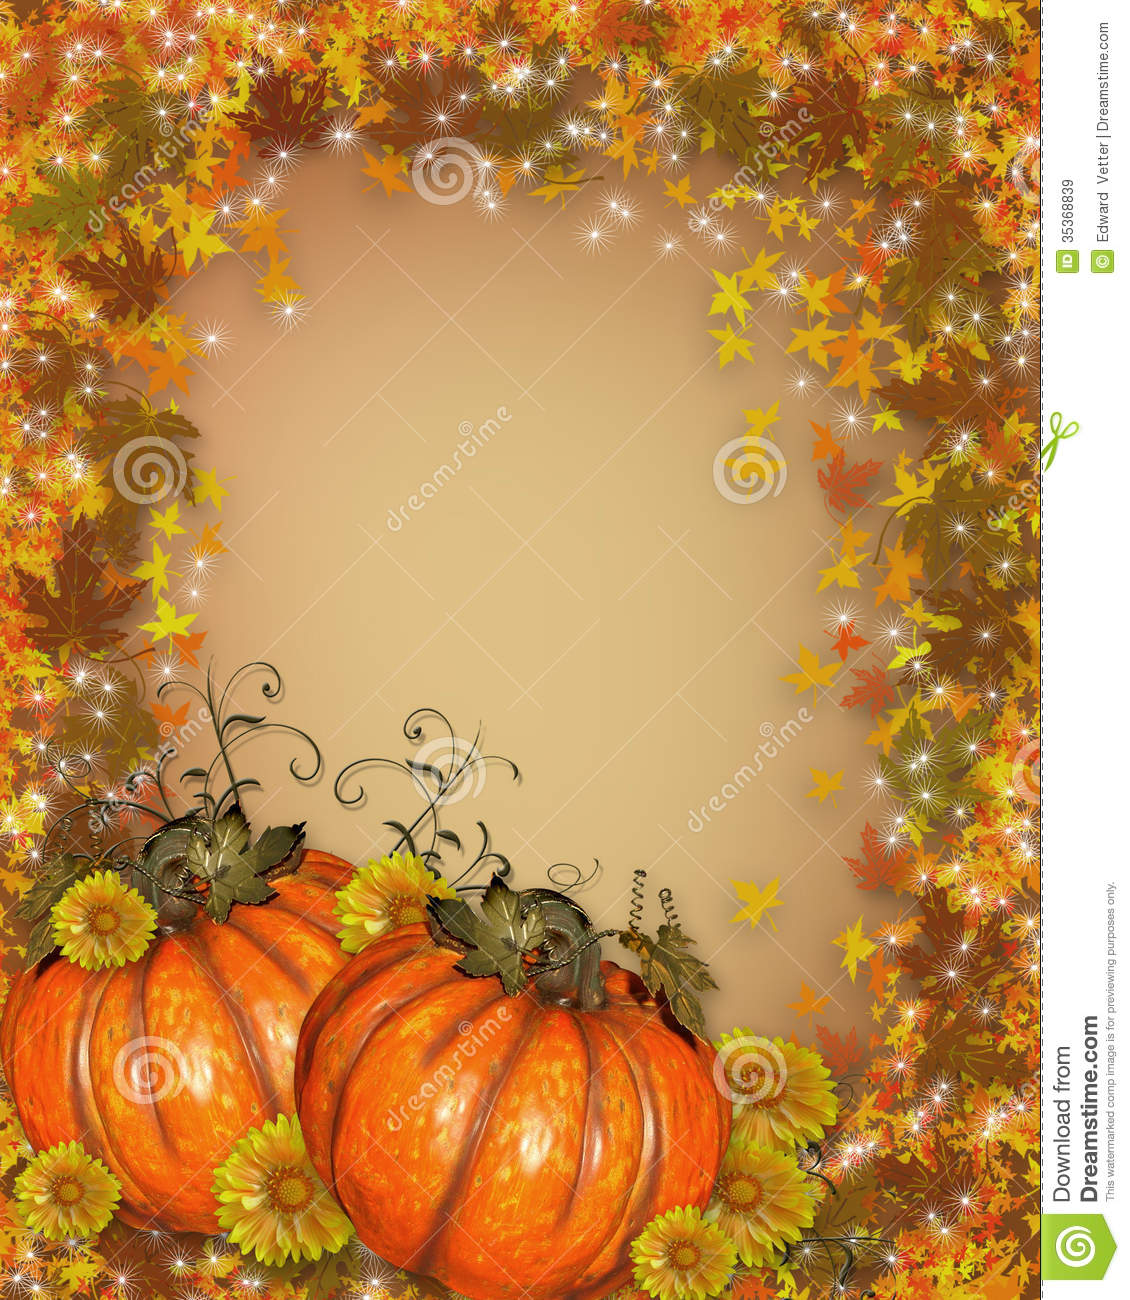 Fall Leaves Wallpaper Powerpoint Background Thanksgiving Autumn Fall Background Stock Illustration